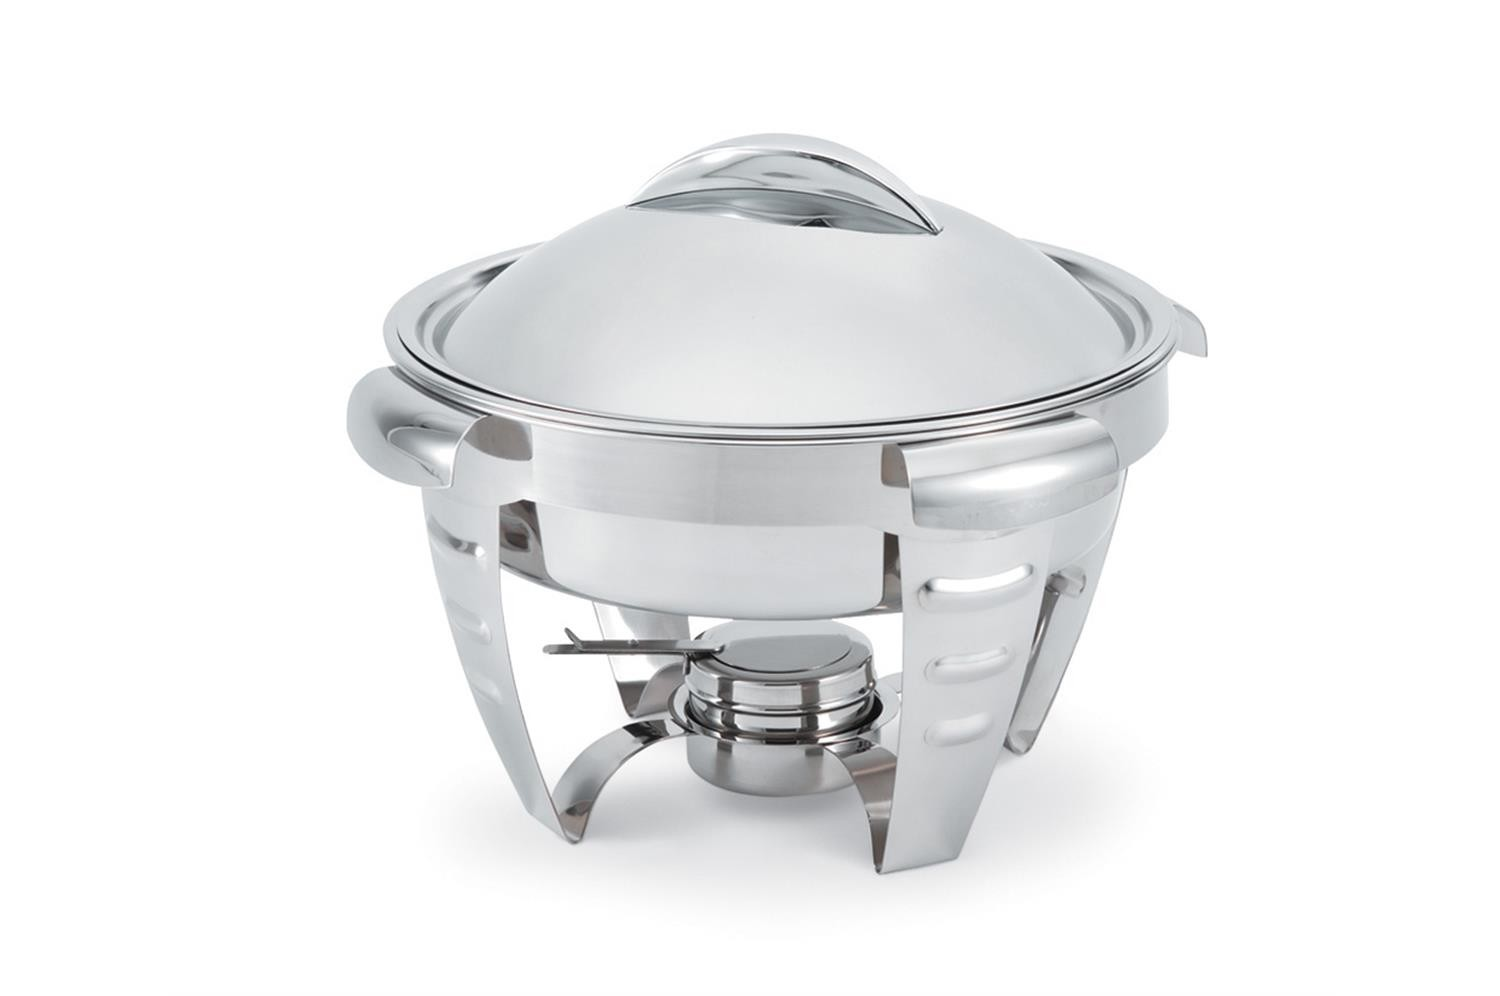 Vollrath 49521 Maximillian Steel Medium Round Chafer 4.2 Qt.